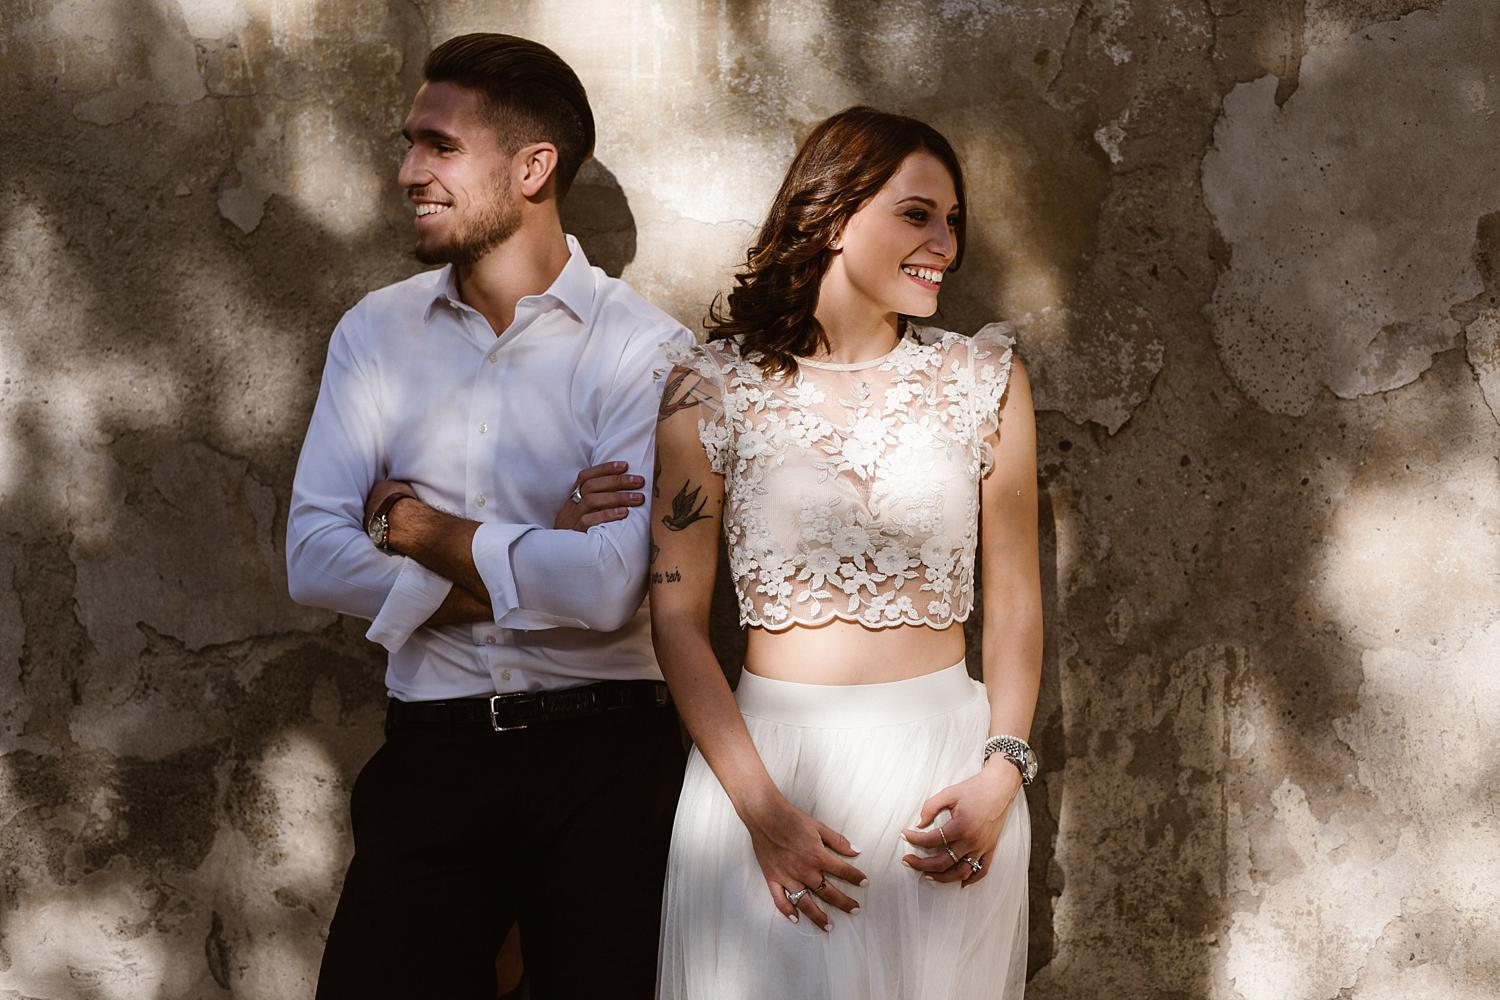 weddingphotographer florence 12 1 - Maddalena & Arturo - A Chic Anniversary Session in Florence